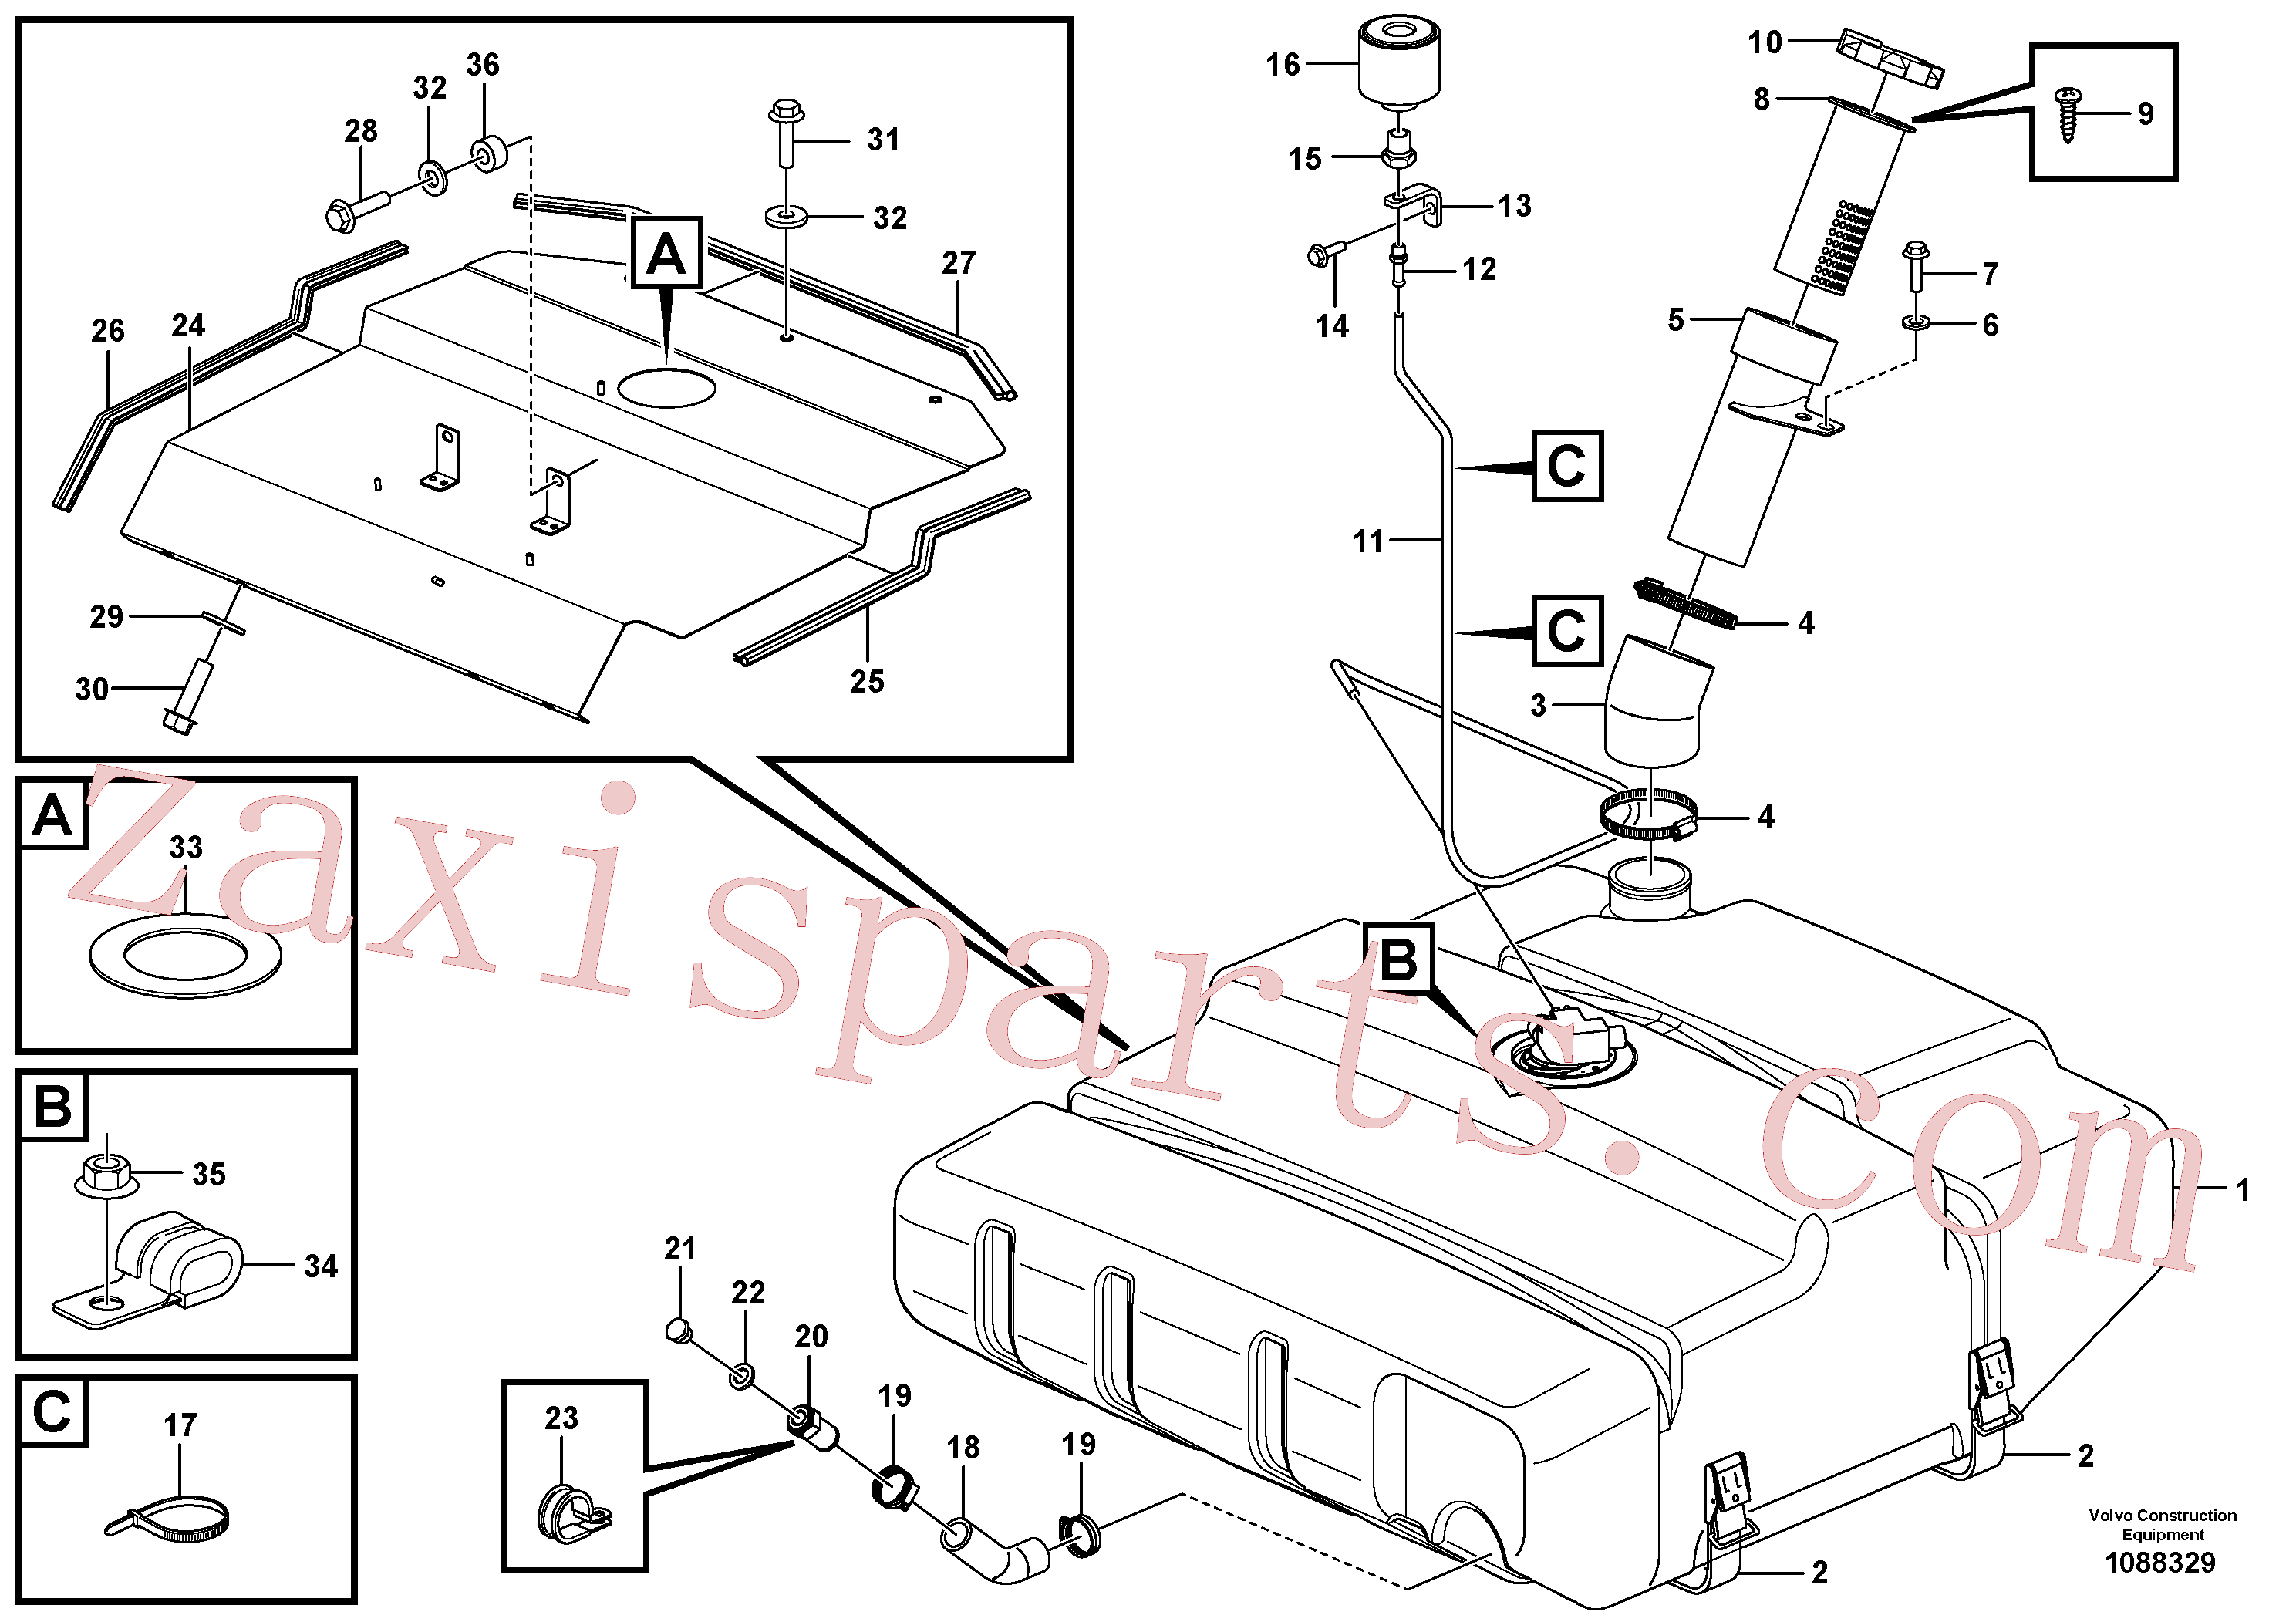 VOE943483 for Volvo Fuel tank with fitting parts(1088329 assembly)